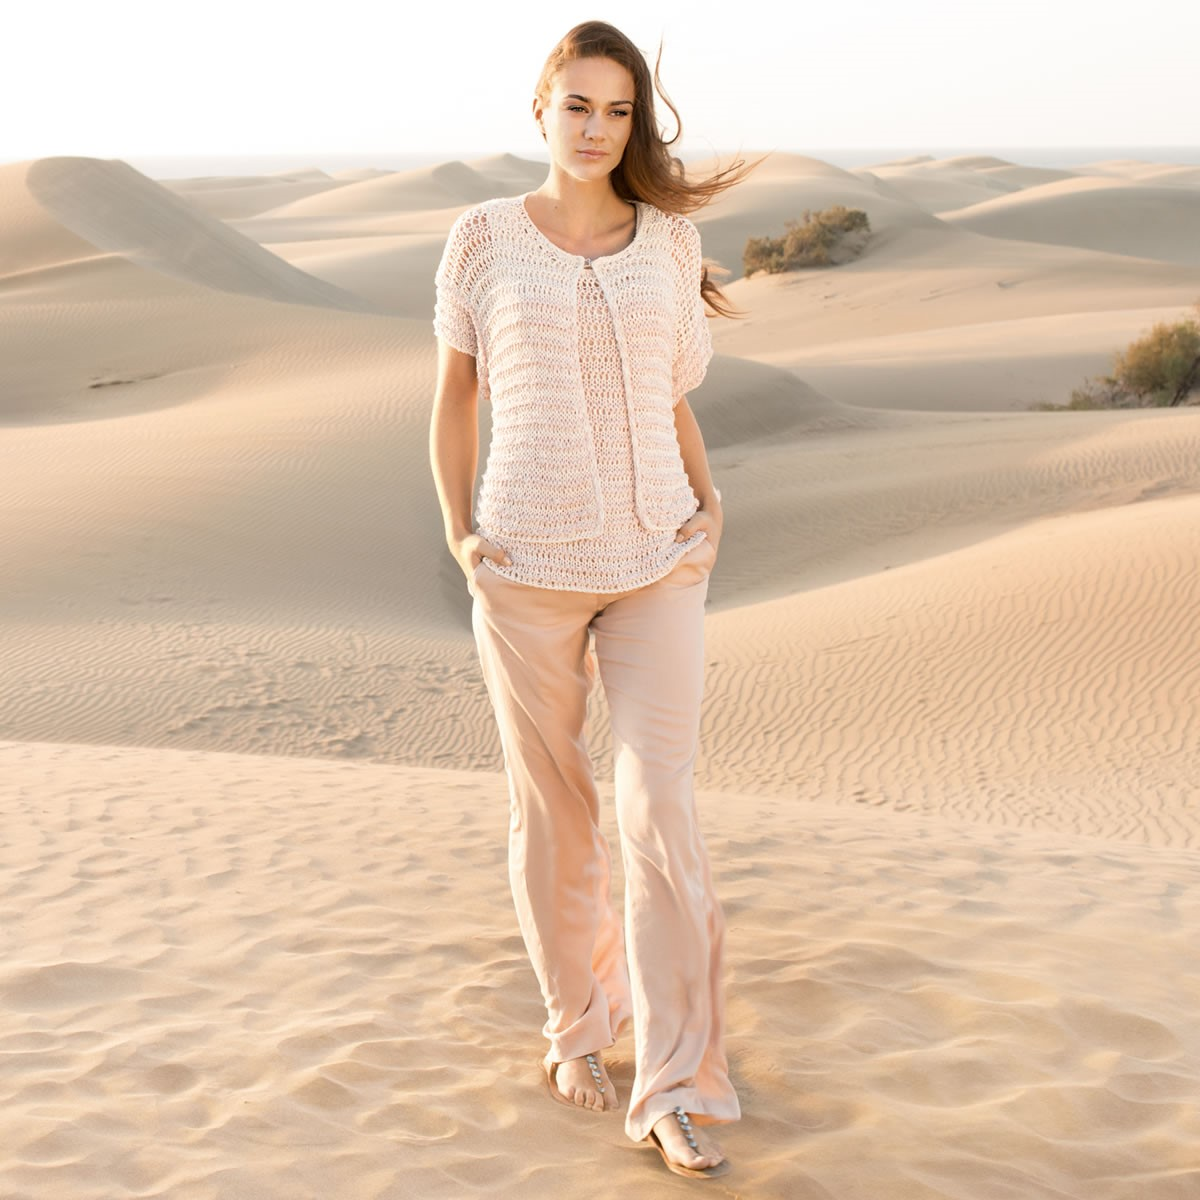 Lana Grossa STRIPED TOP IN OPENWORK PATTERN Opera